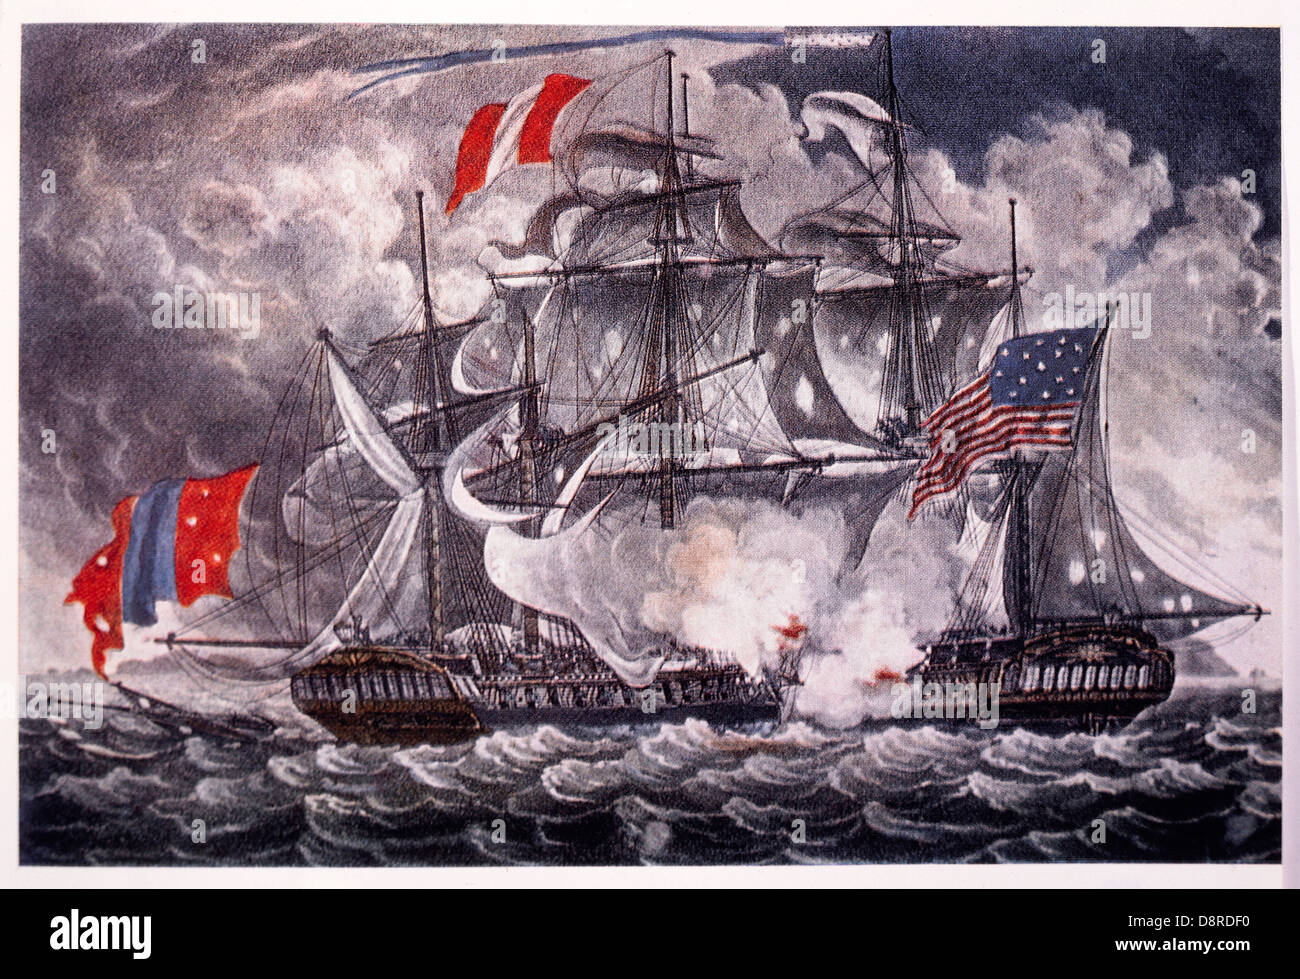 Battle Between U.S. Frigate Constellation and French Frigate L'Insurgente, in West Indies, February 9, 1799 - Stock Image